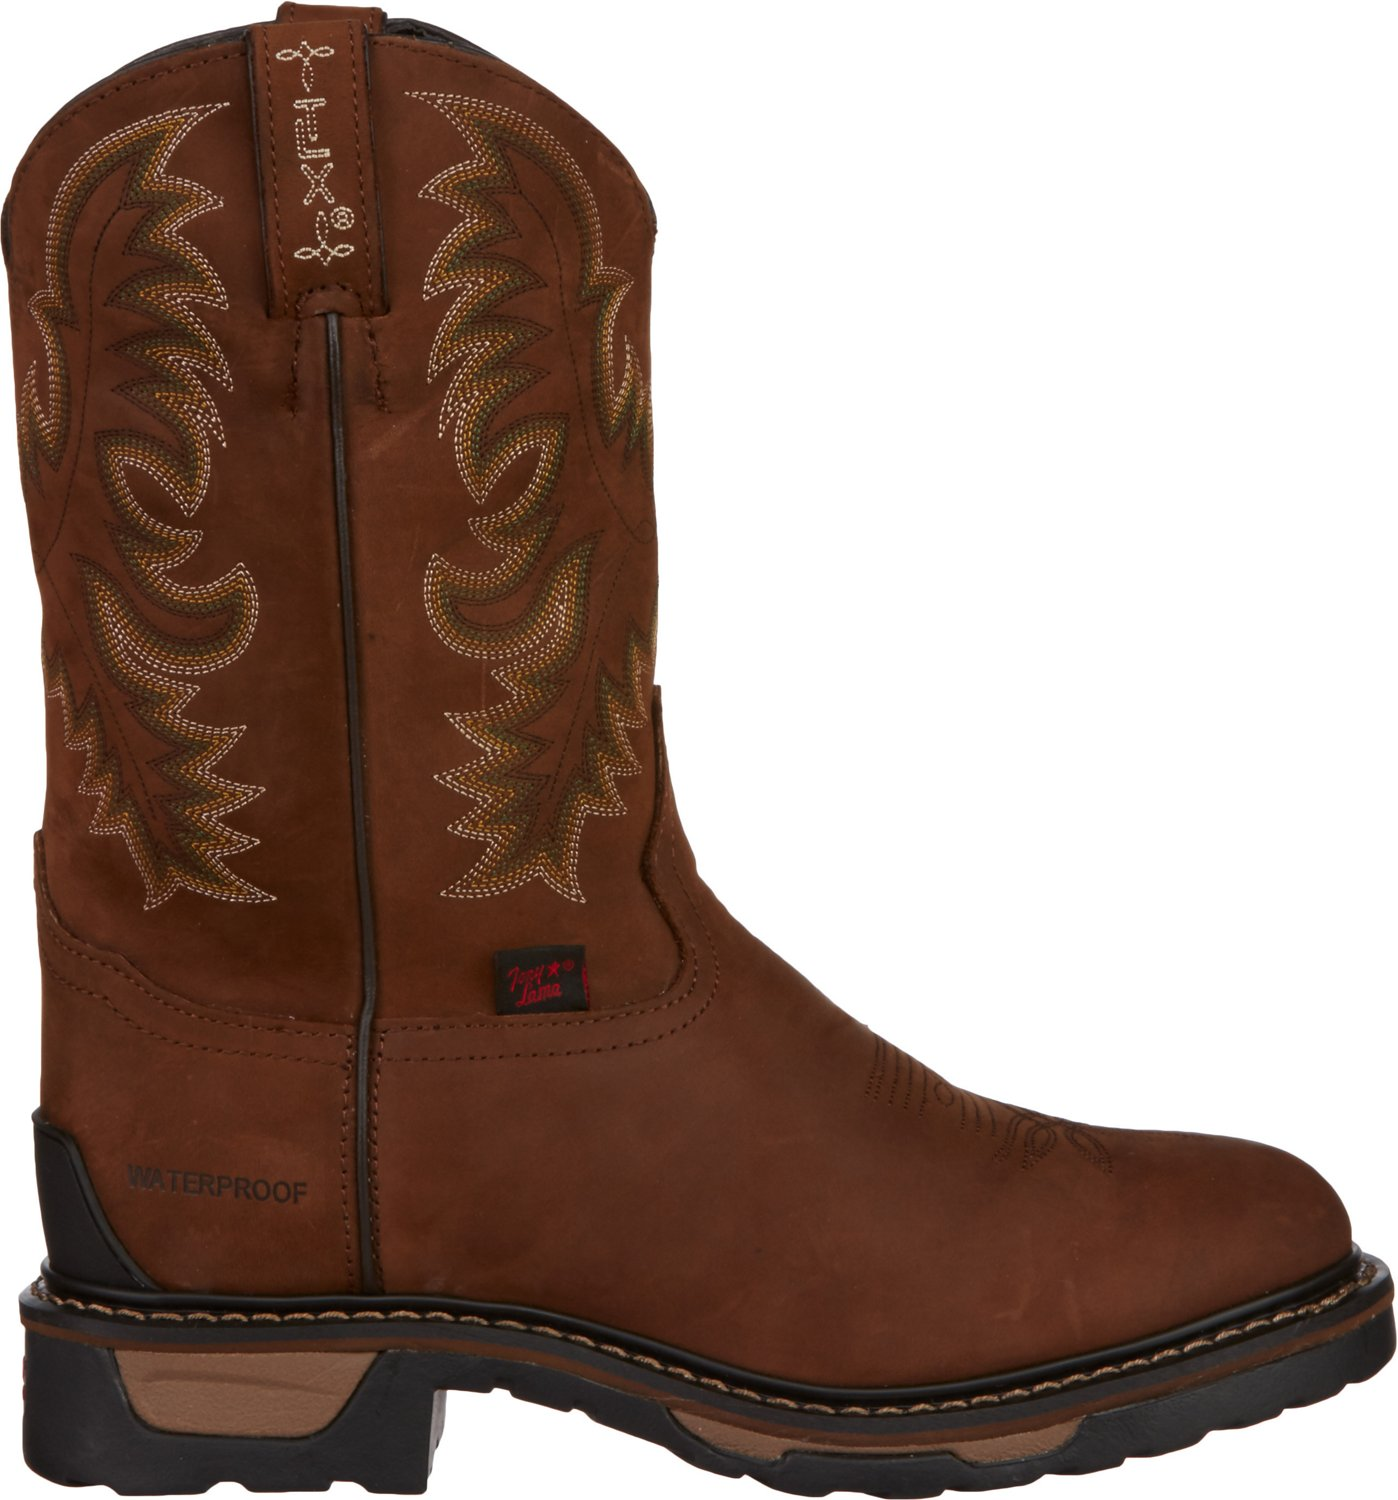 b34315402ec Soft Toe Work Boots | Work Boots With Soft Toe, Soft Toe Work Boots ...